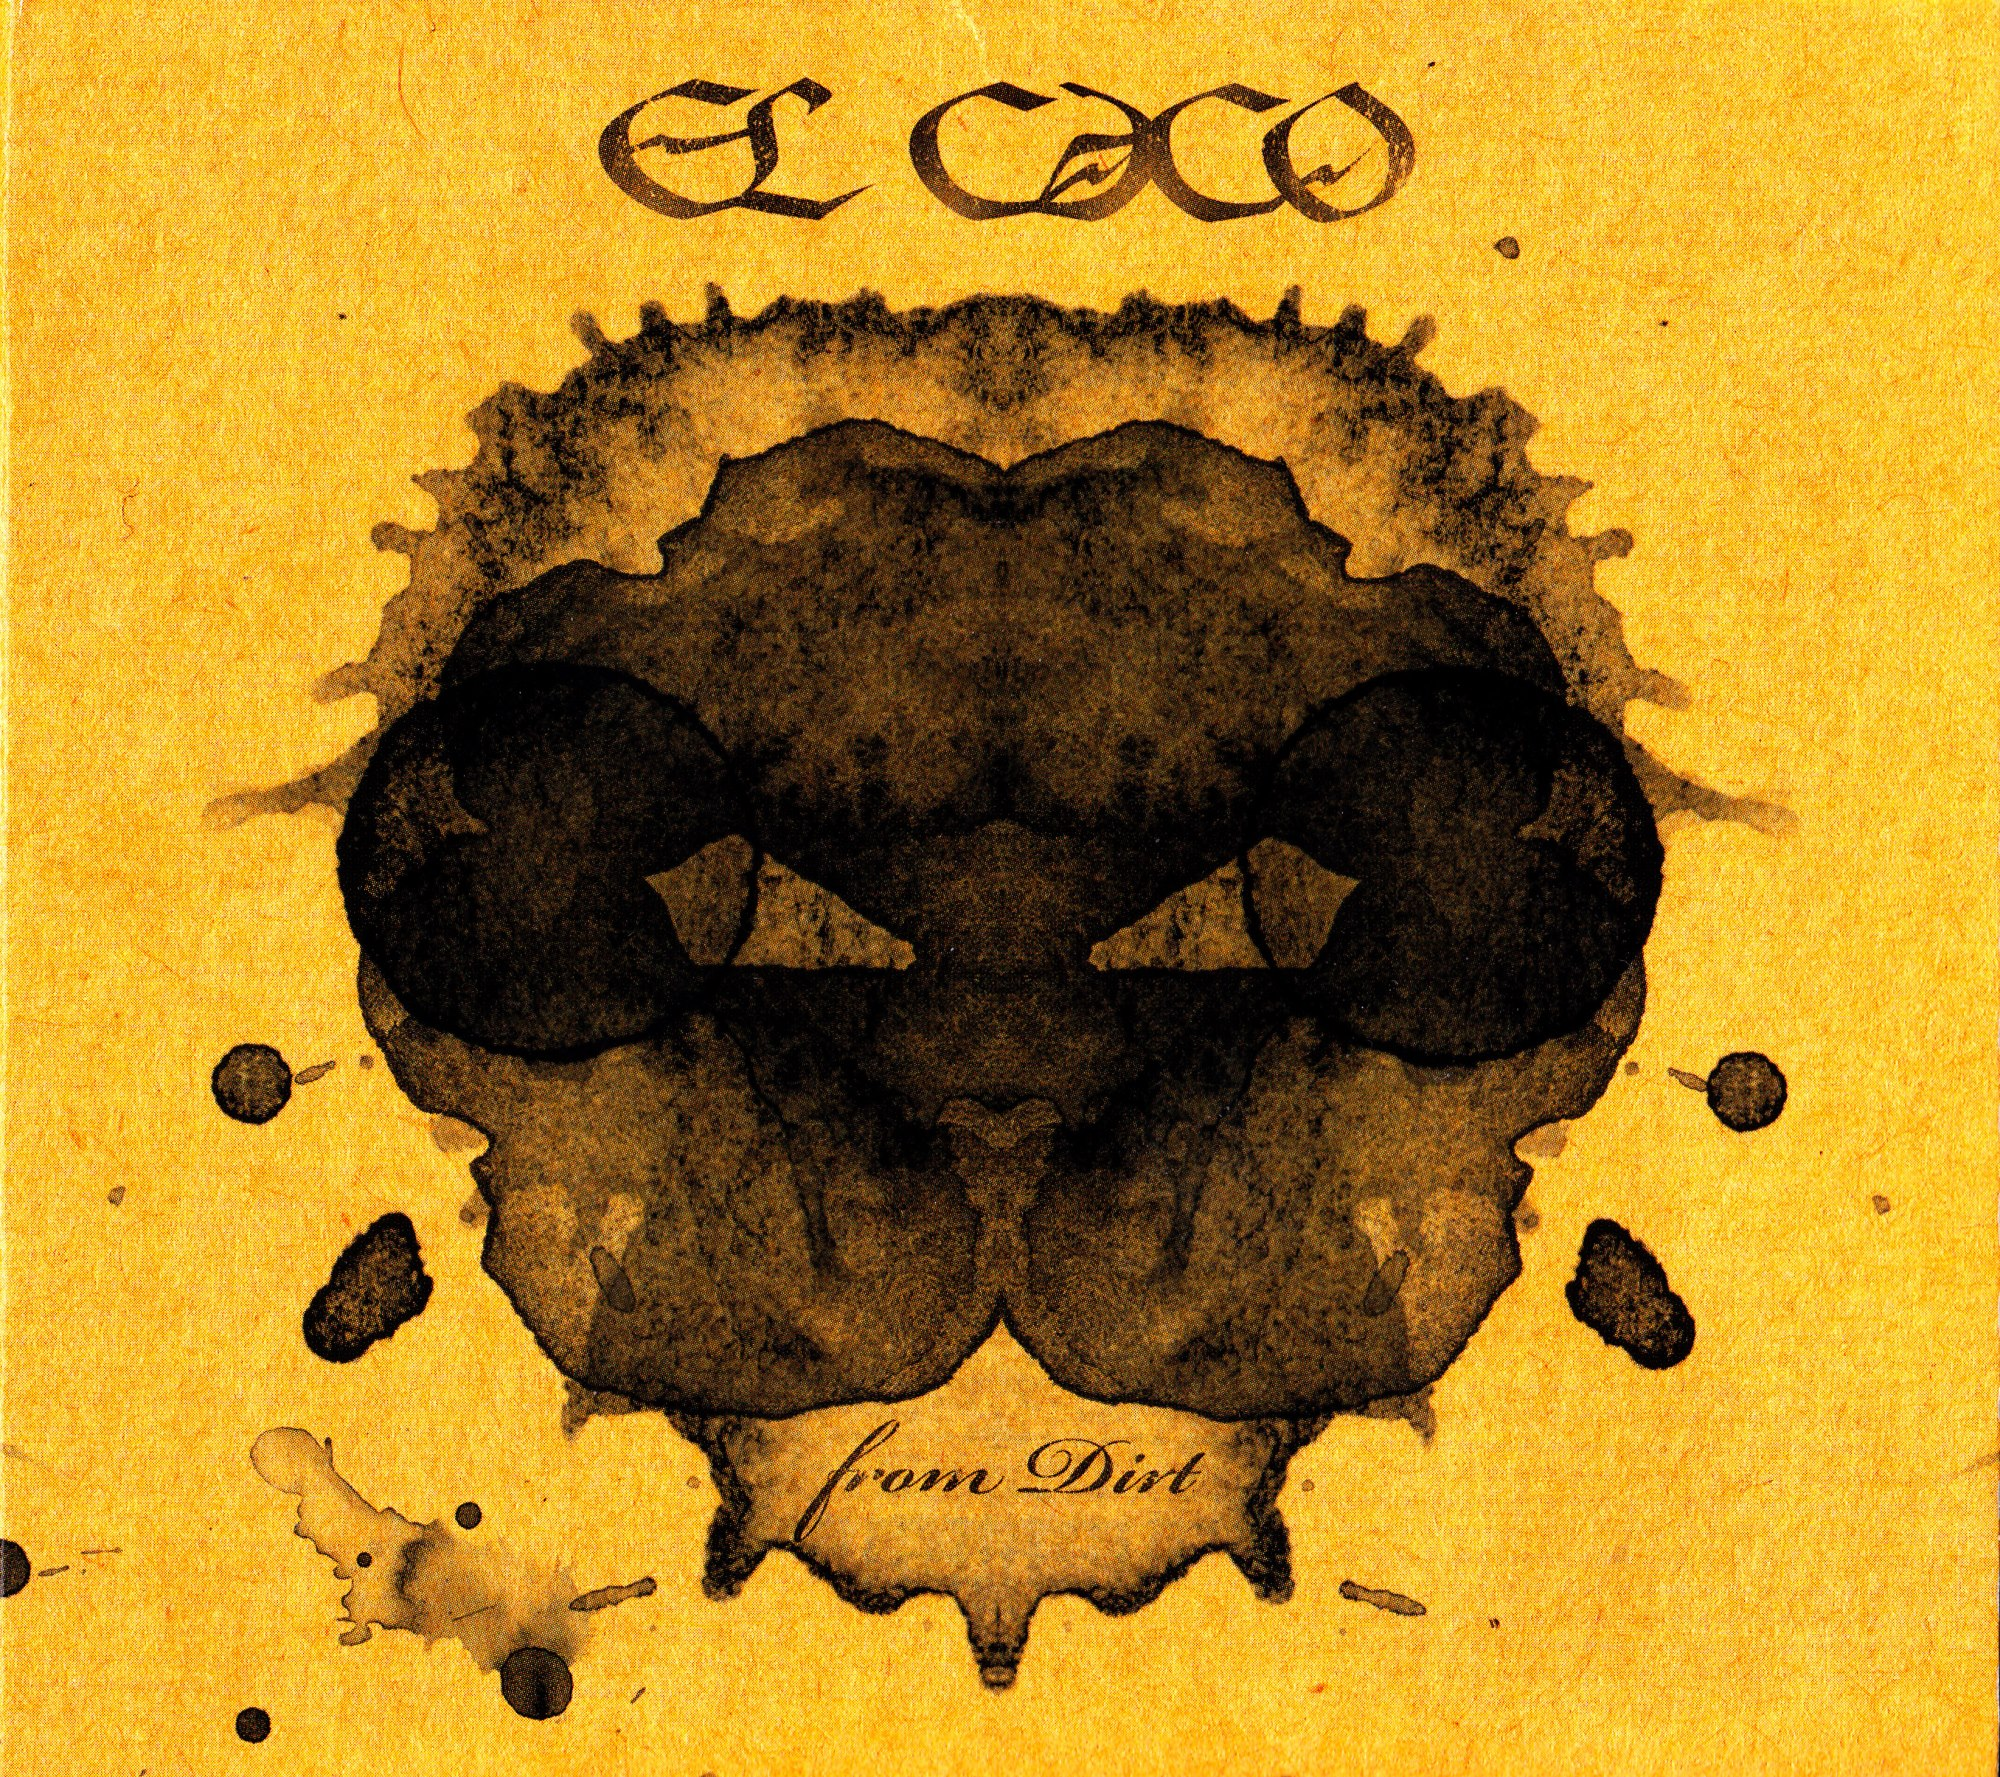 El Caco From Dirt